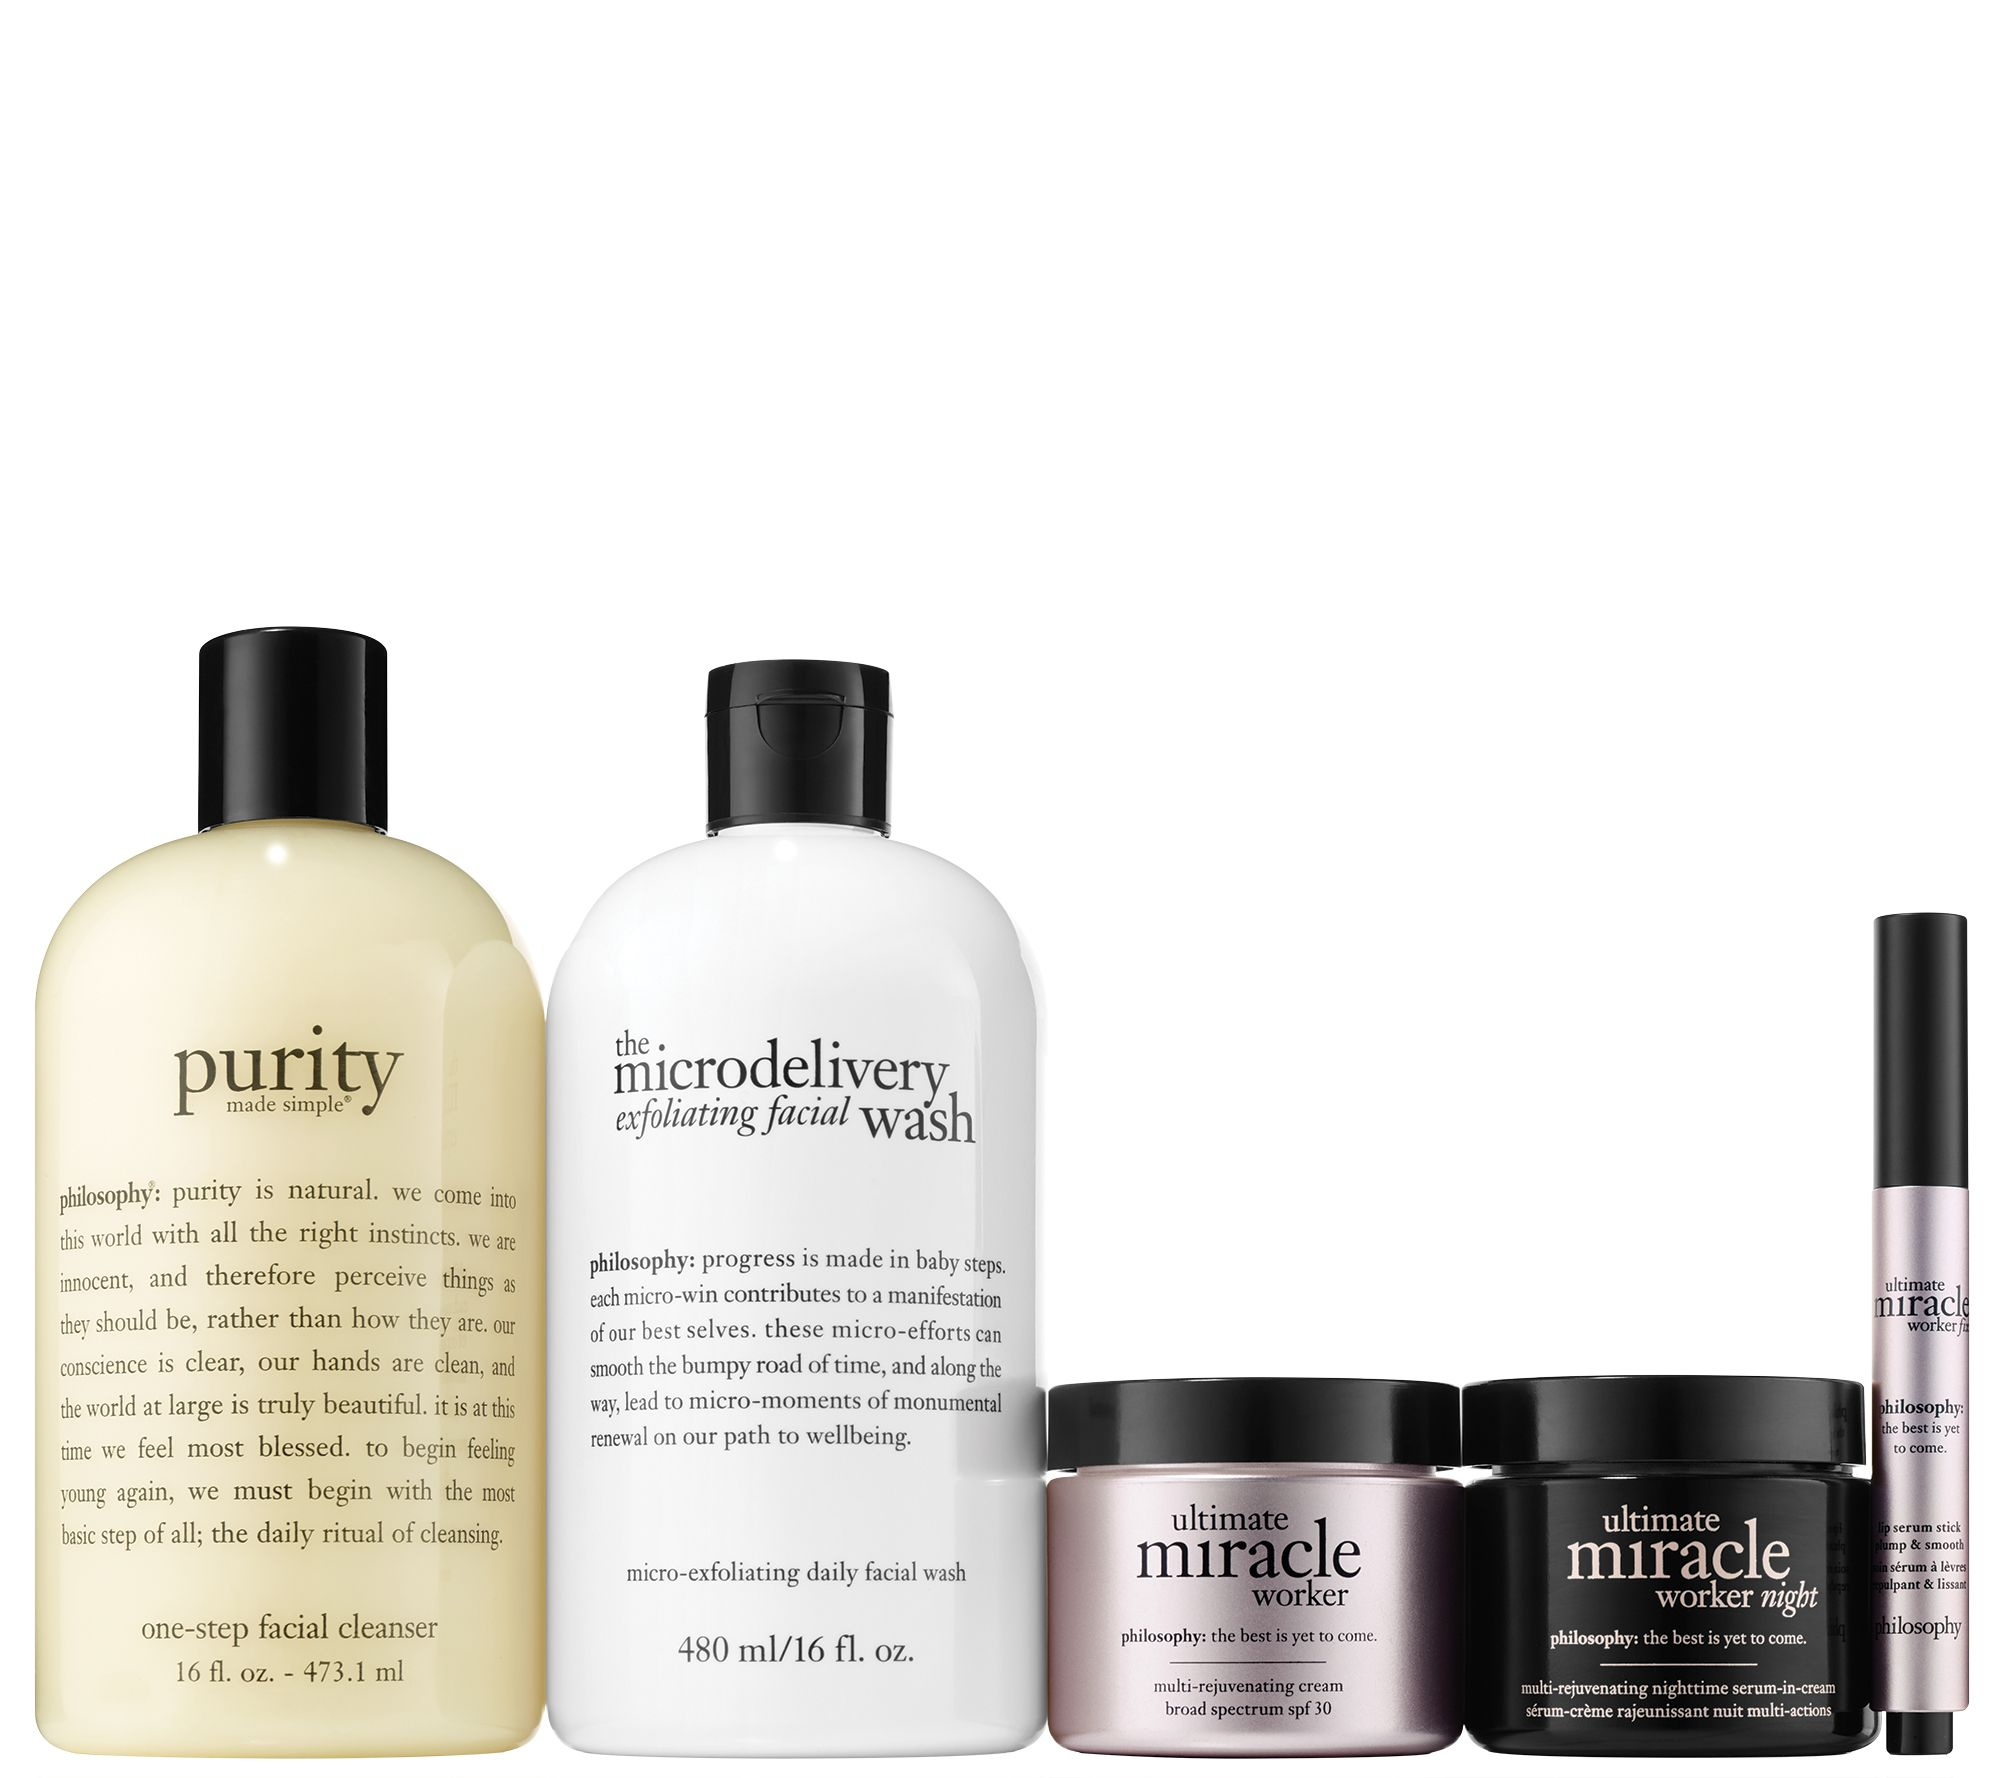 9adfb35dcdd58 philosophy ultimate miracle worker 5-piece am pm skincare kit - Page 1 —  QVC.com